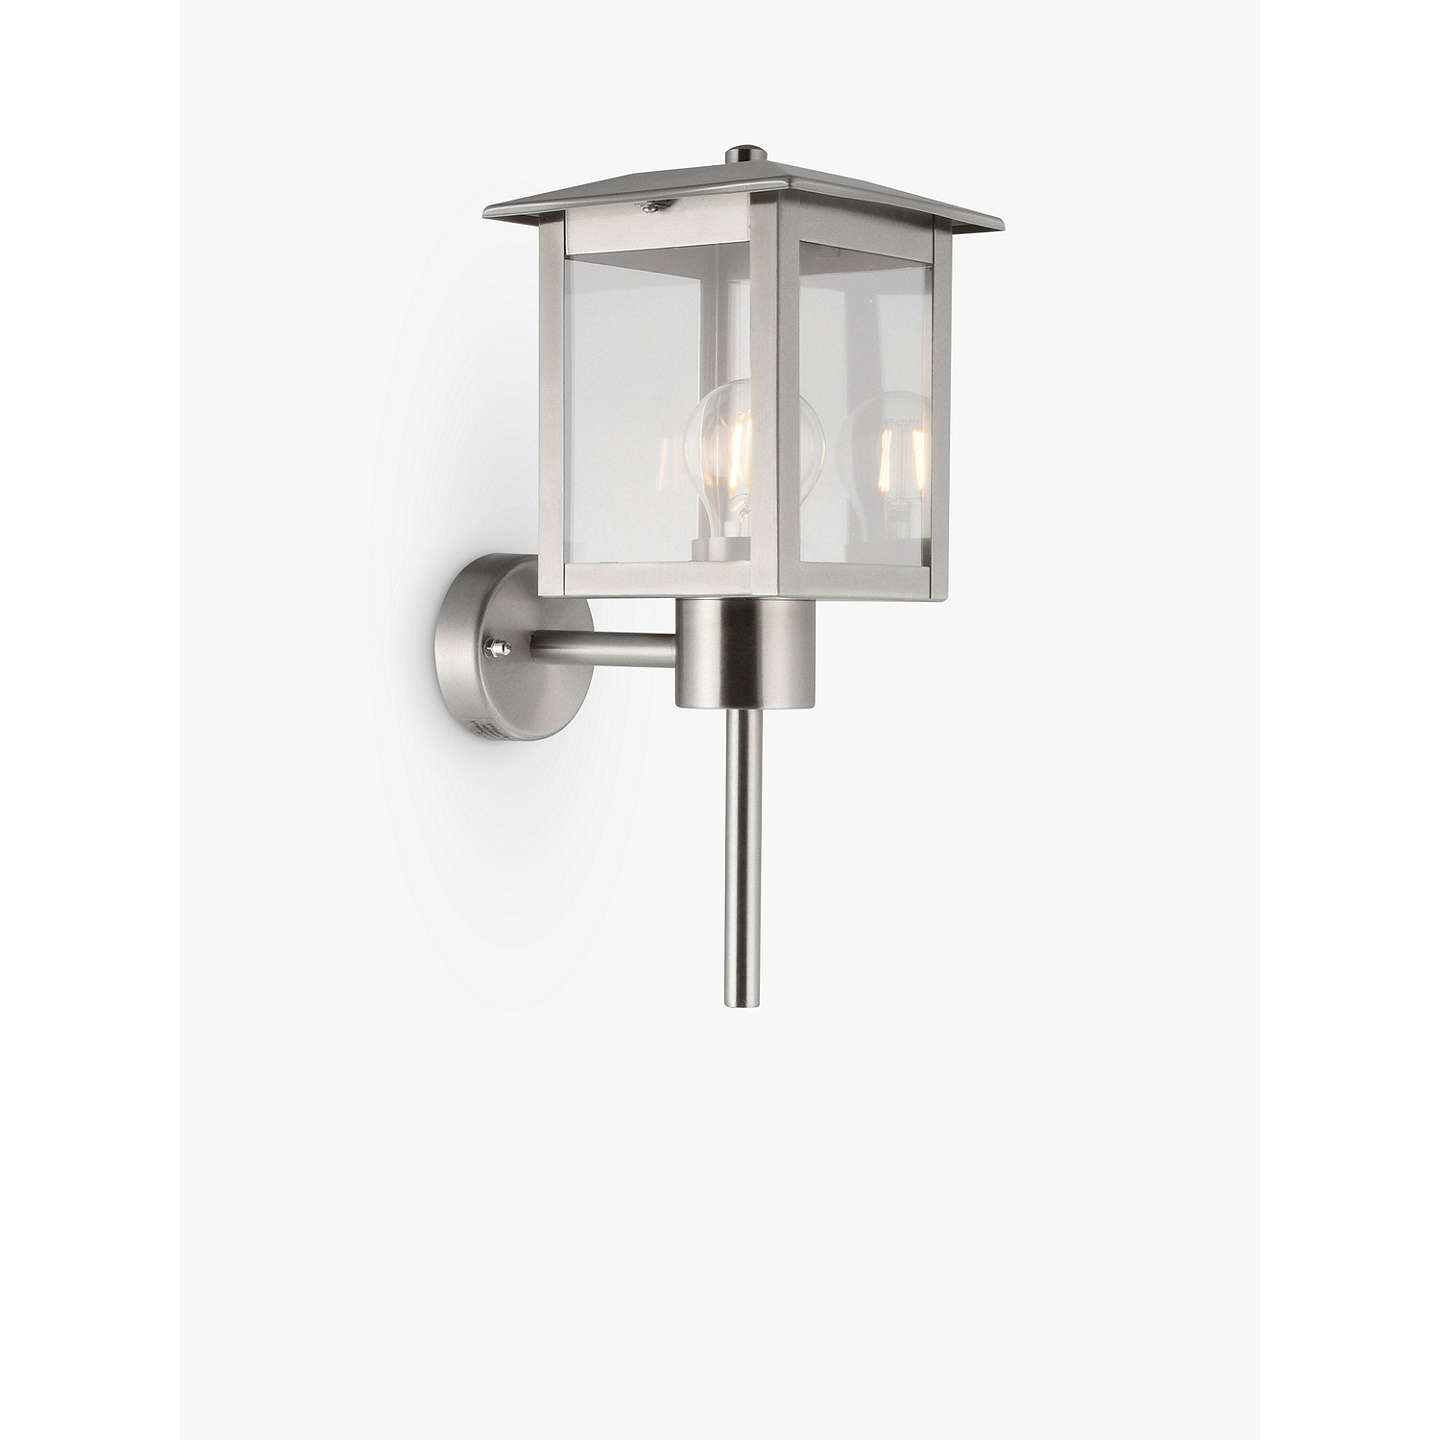 John lewis stowe coach lantern outdoor wall light at john lewis buyjohn lewis stowe coach lantern outdoor wall light chrome online at johnlewis mozeypictures Image collections